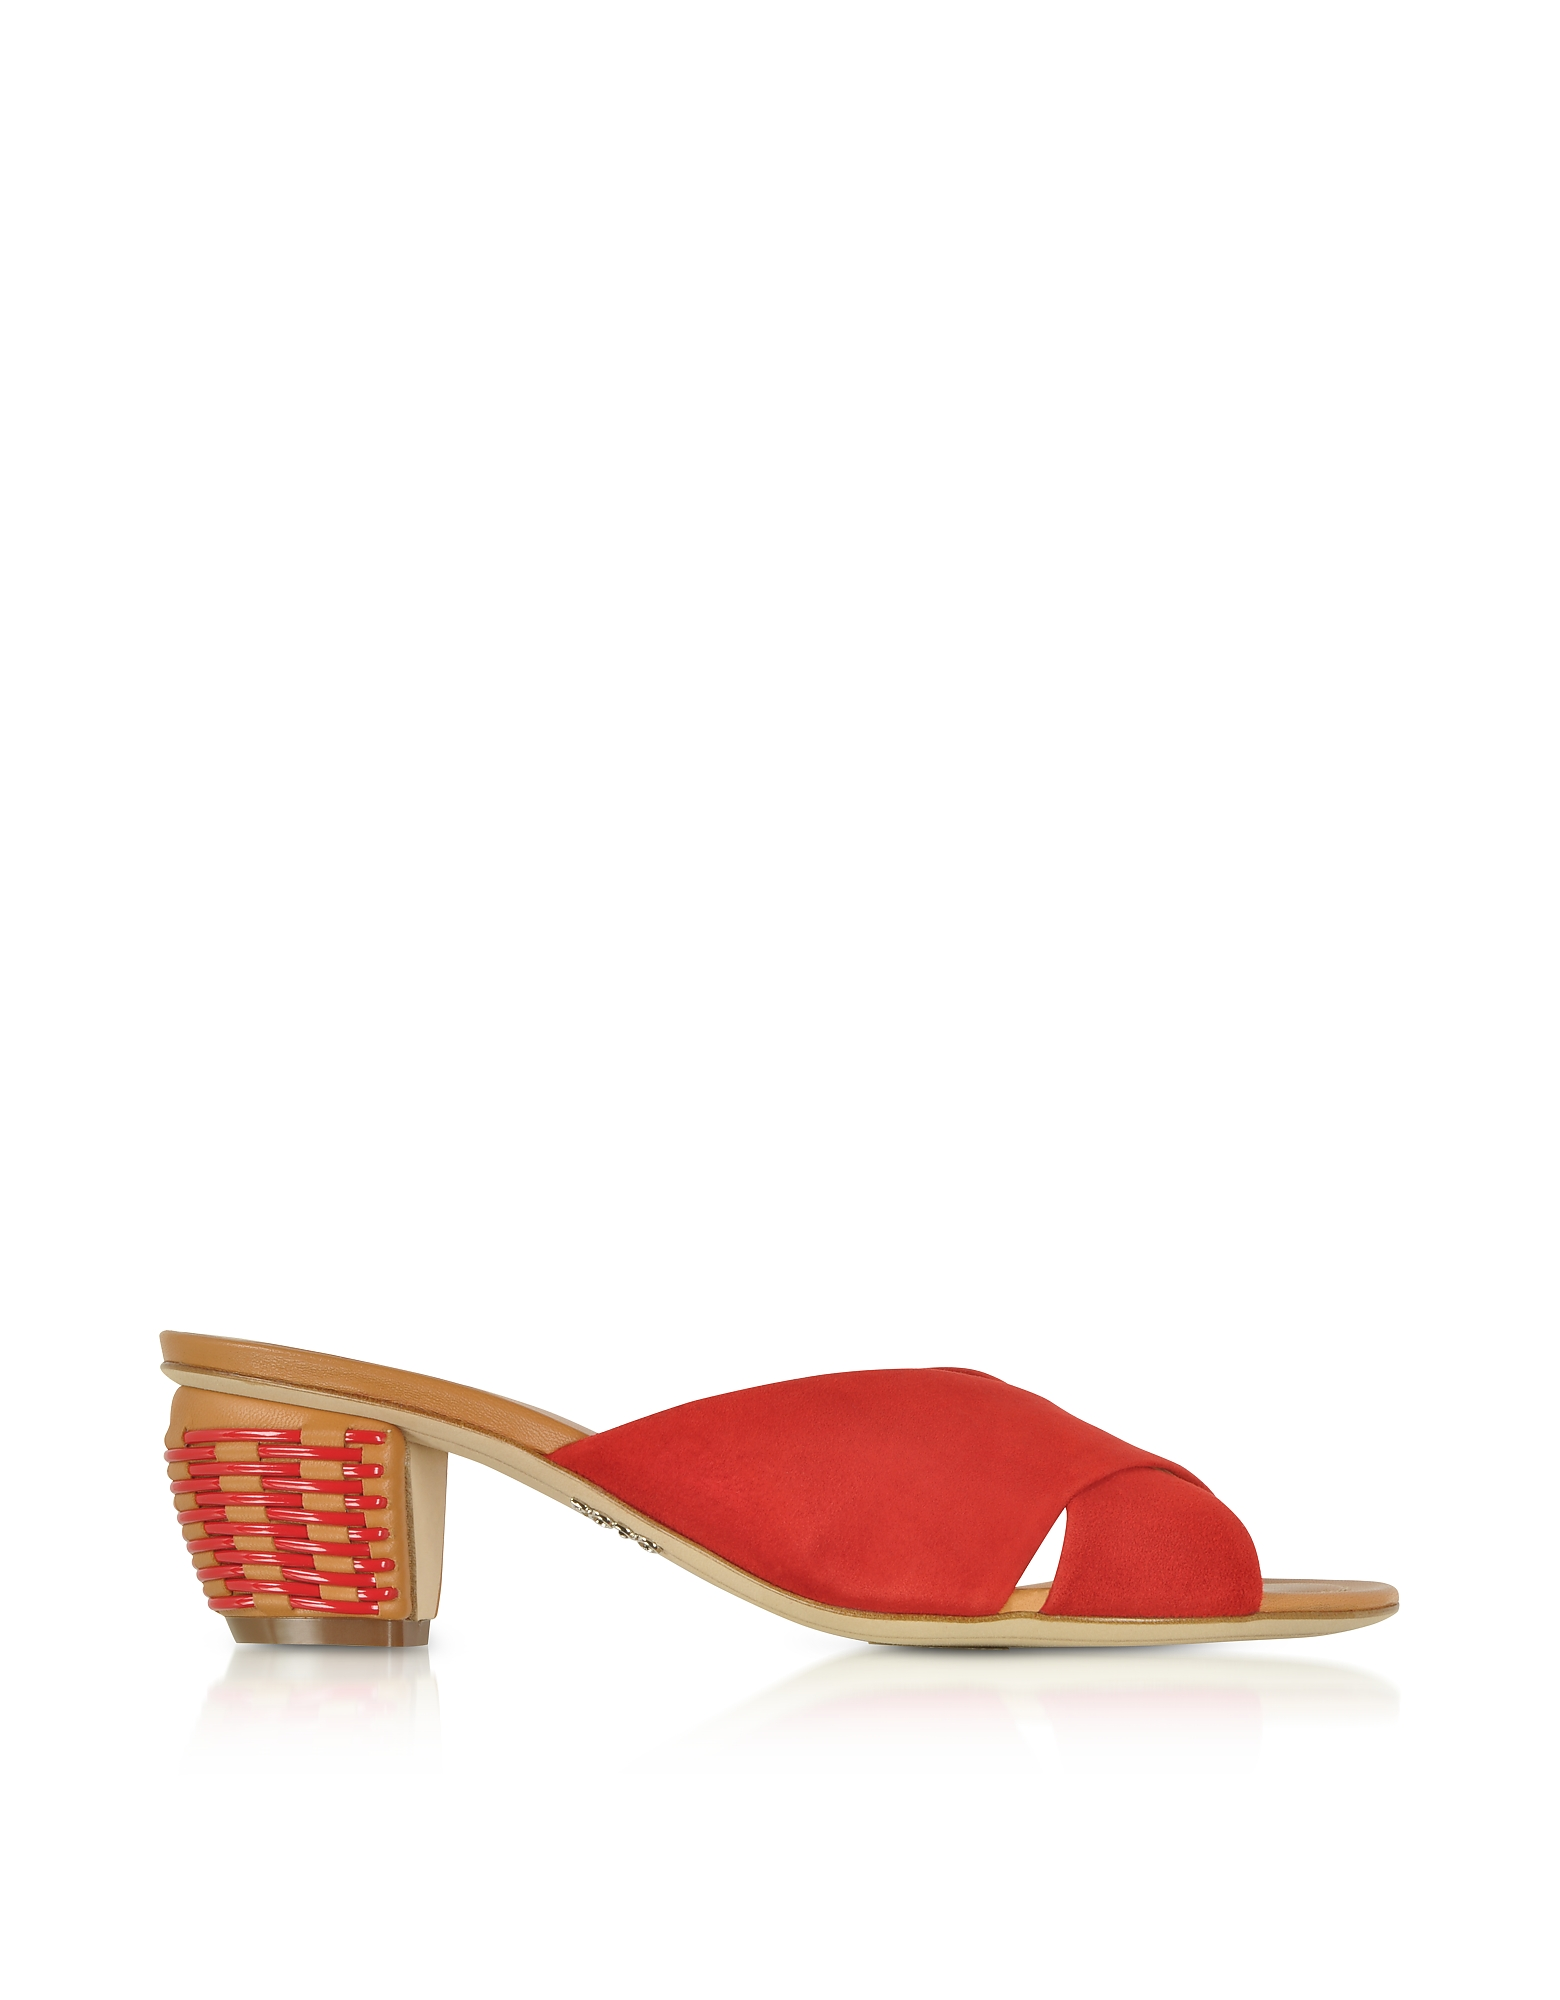 Rodo Shoes, Red Suede 5MM Criss-Cross Slide Sandals